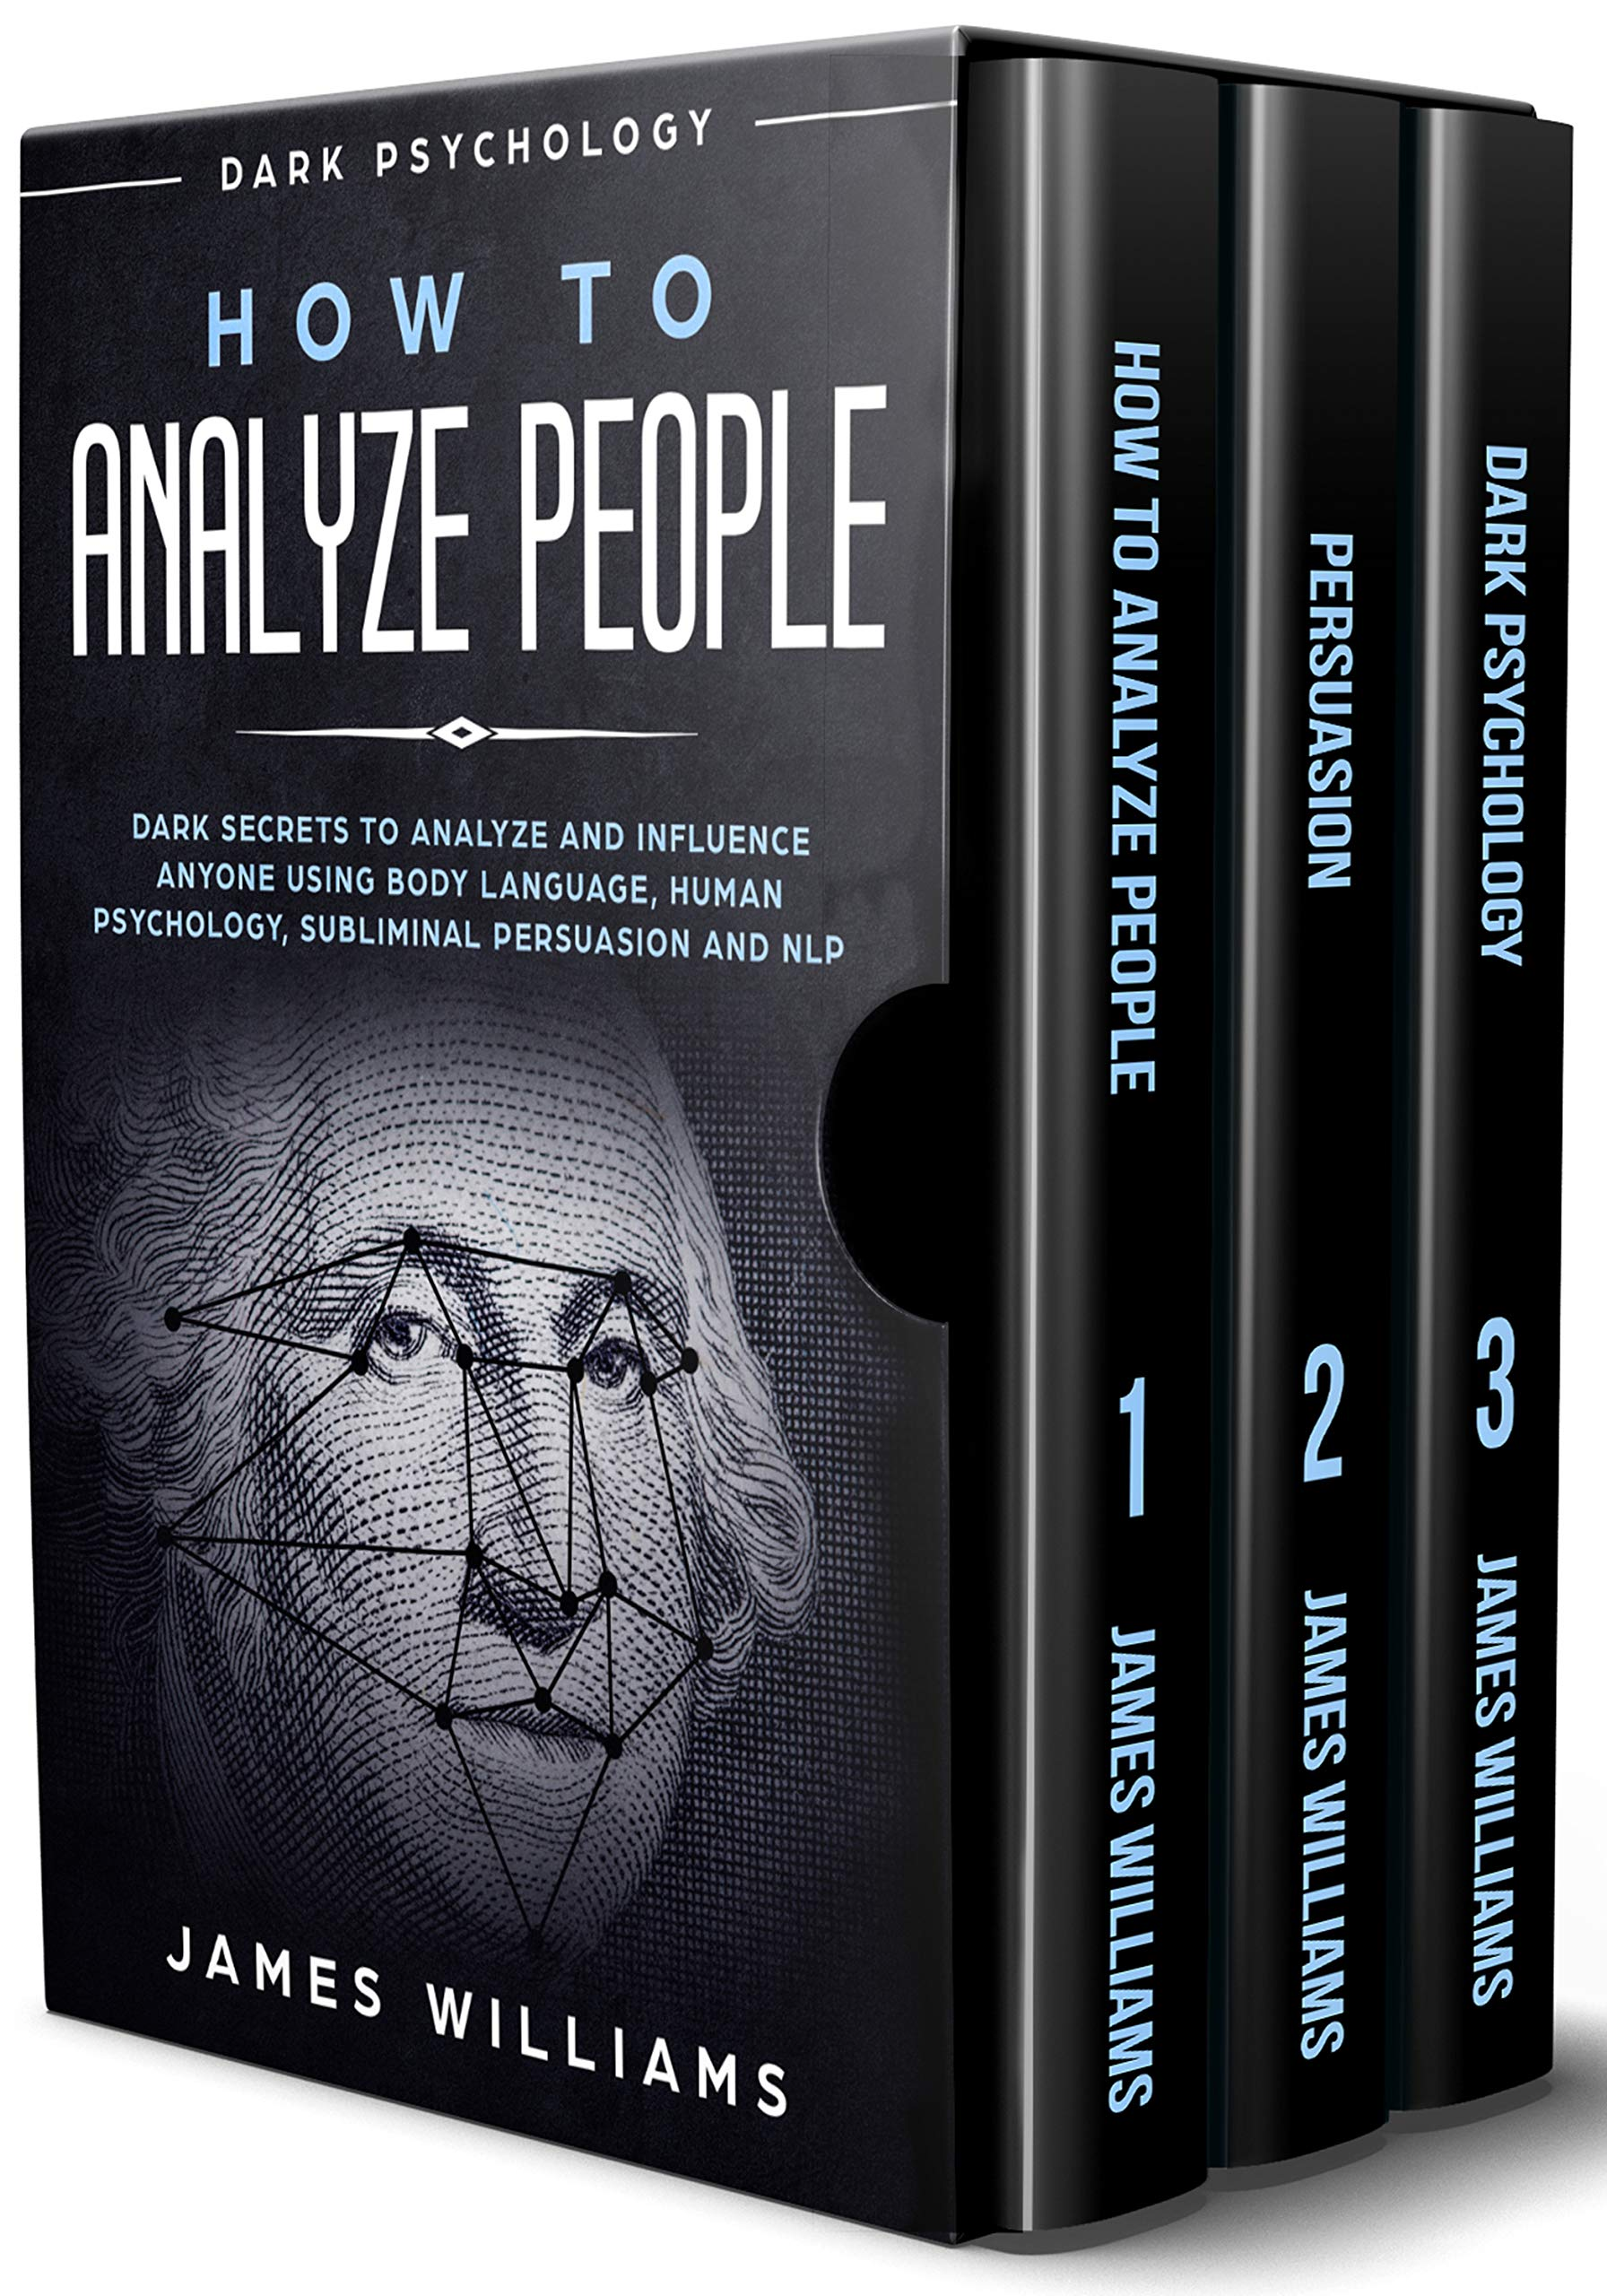 How To Analyze People  Persuasion And Dark Psychology   3 Books In 1   How To Recognize The Signs Of A Toxic Person Manipulating You And The Best Defense Against It  English Edition